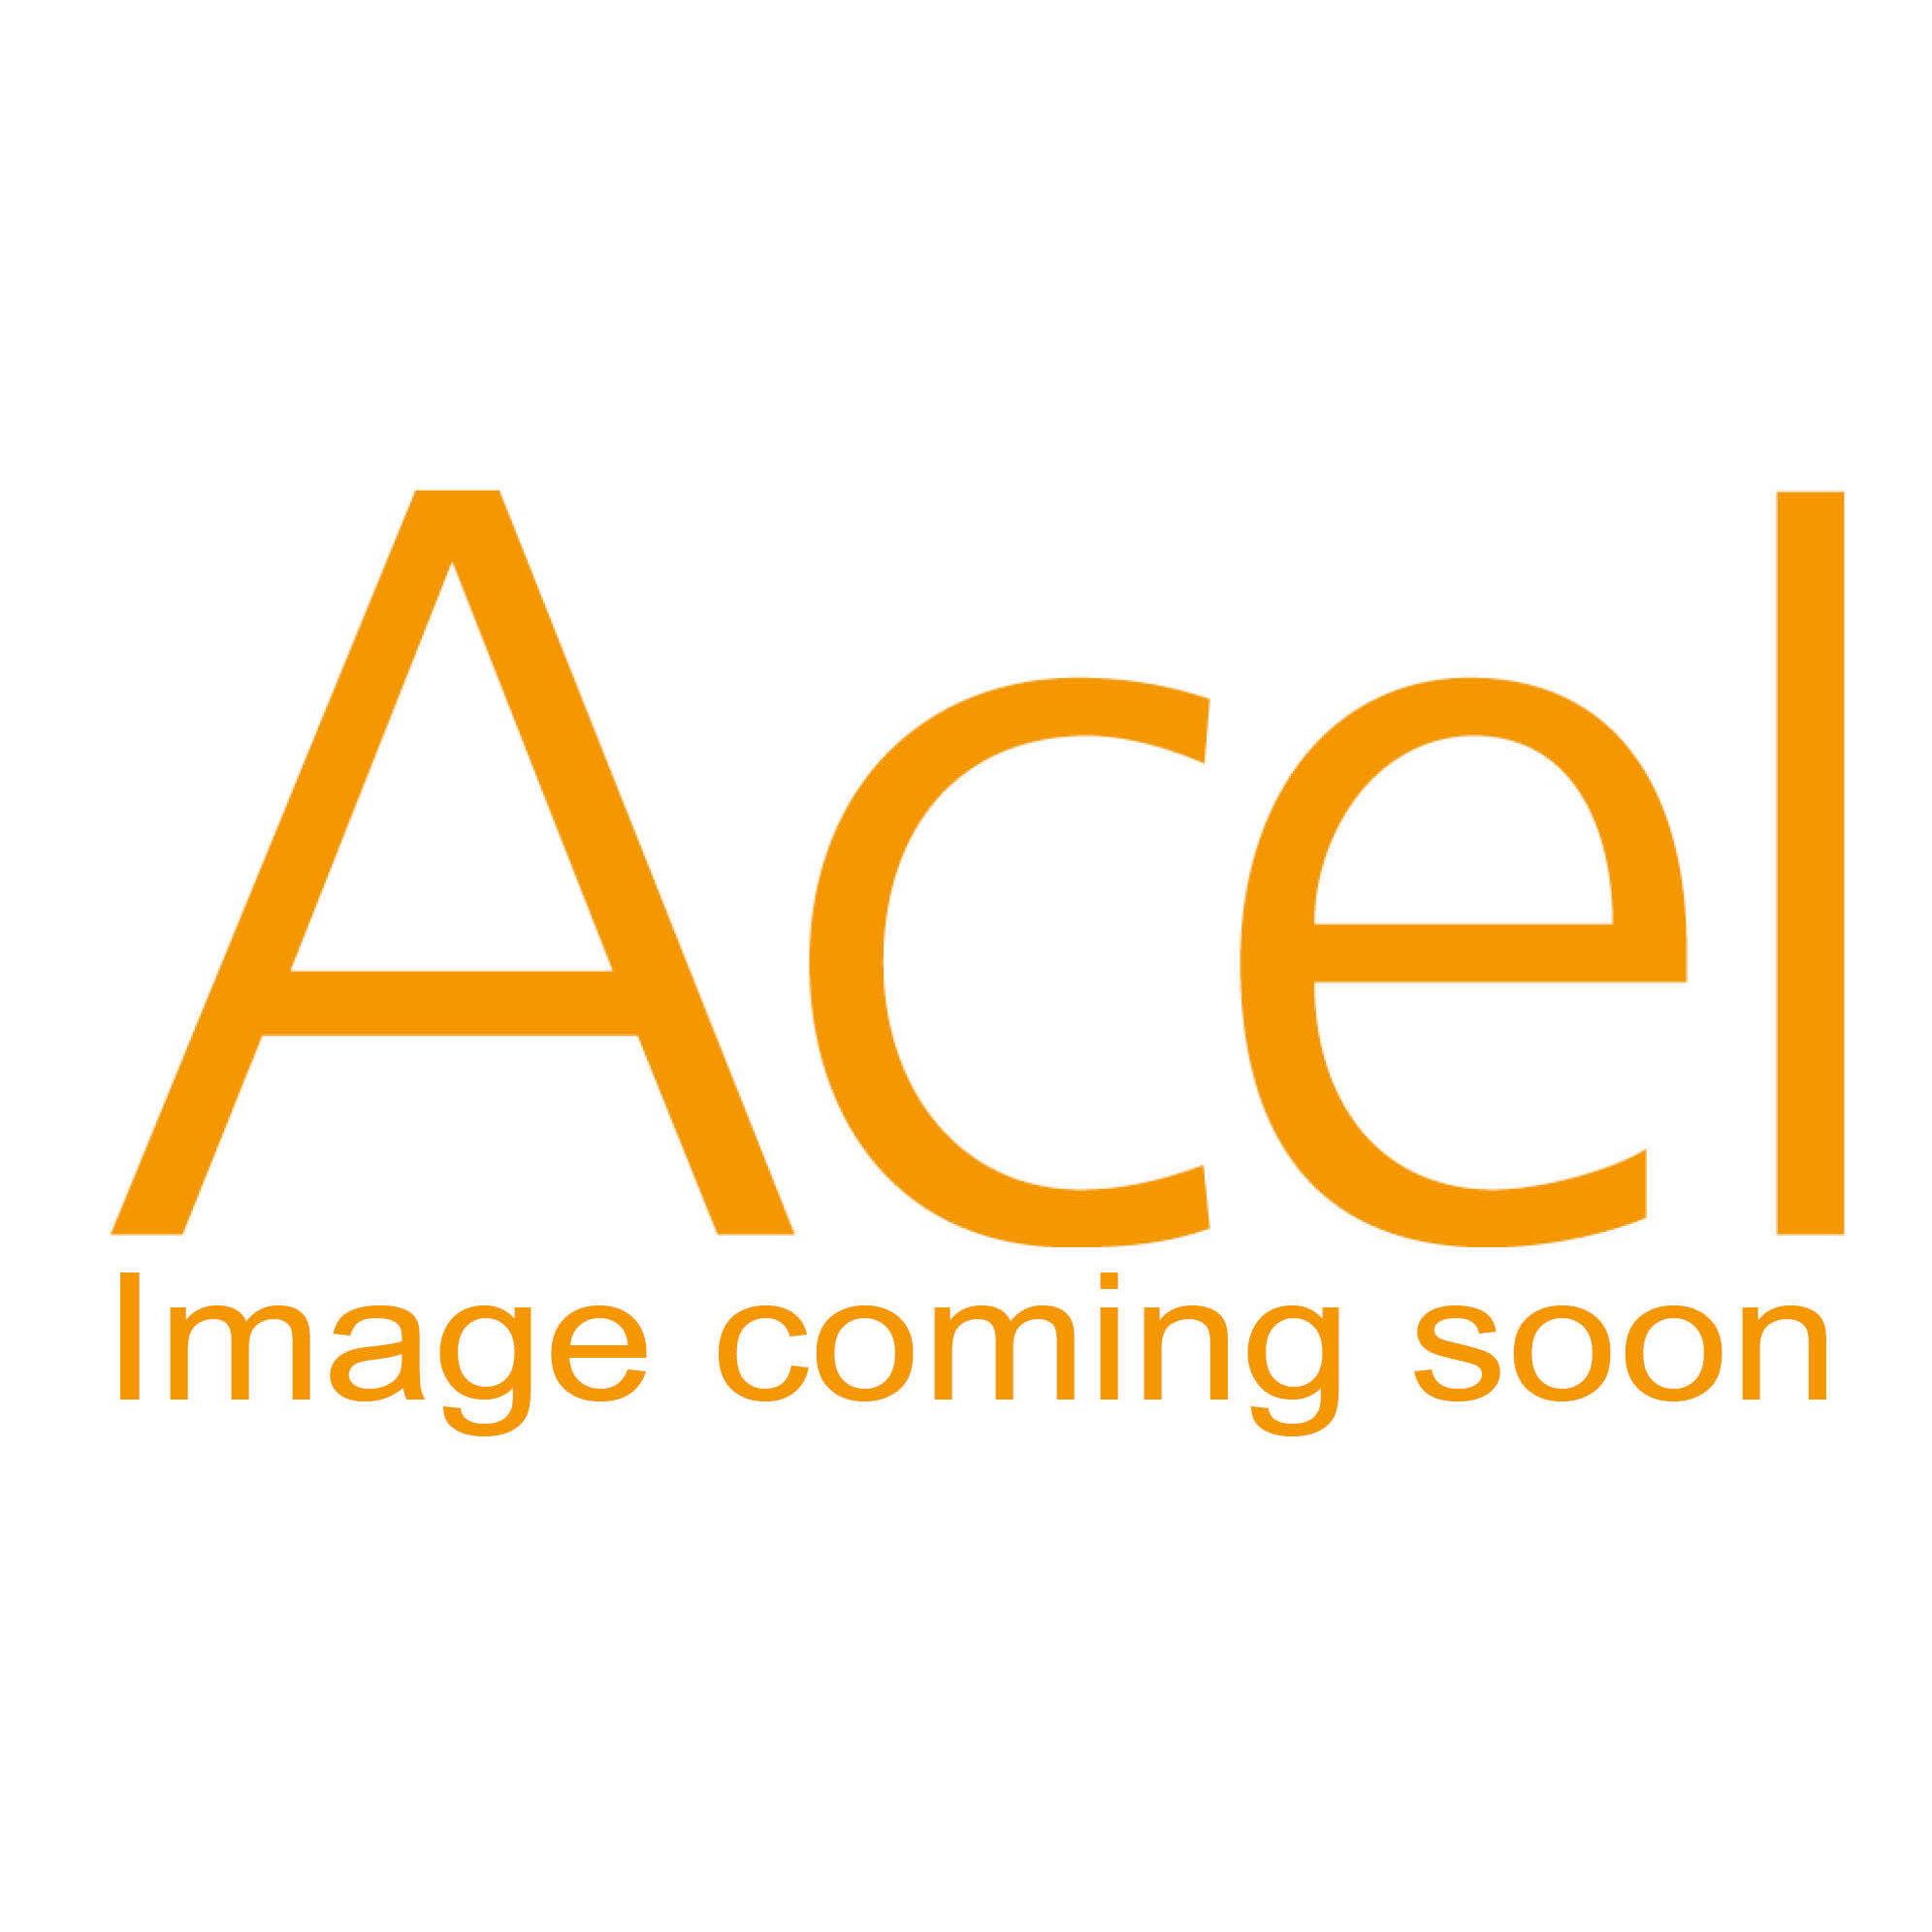 Self Adhesive Vinyl Test and Inspection Labels - Pass test labels small 35 x 15mm Pk250